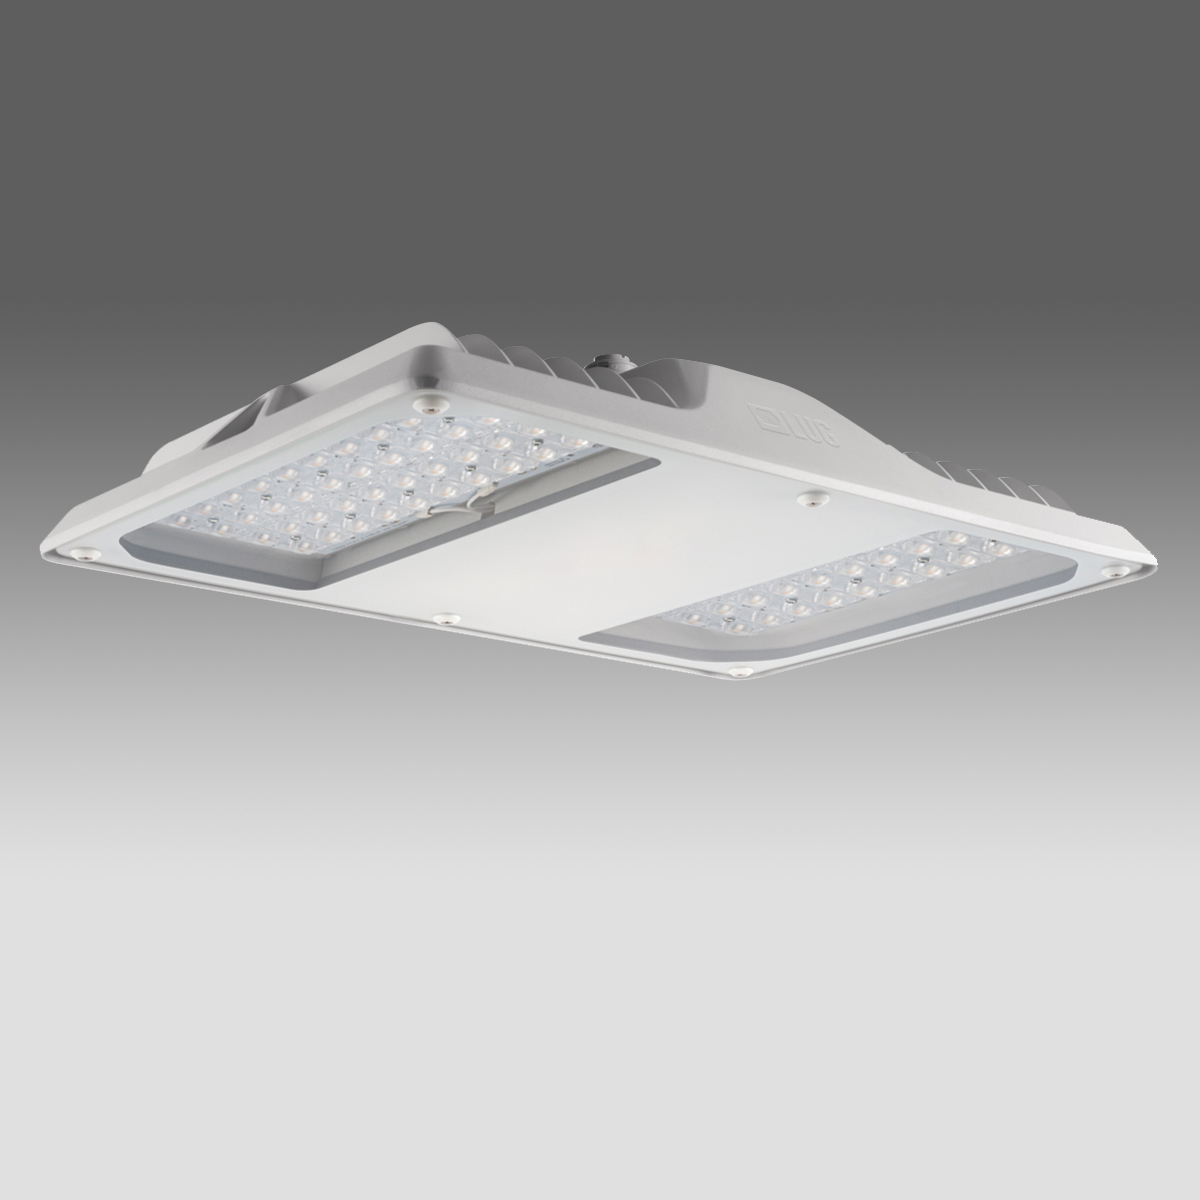 1 Stk Arktur Square PLUS LED 206W 24850lm/765 EVG IP65 110° grau LIG4253013